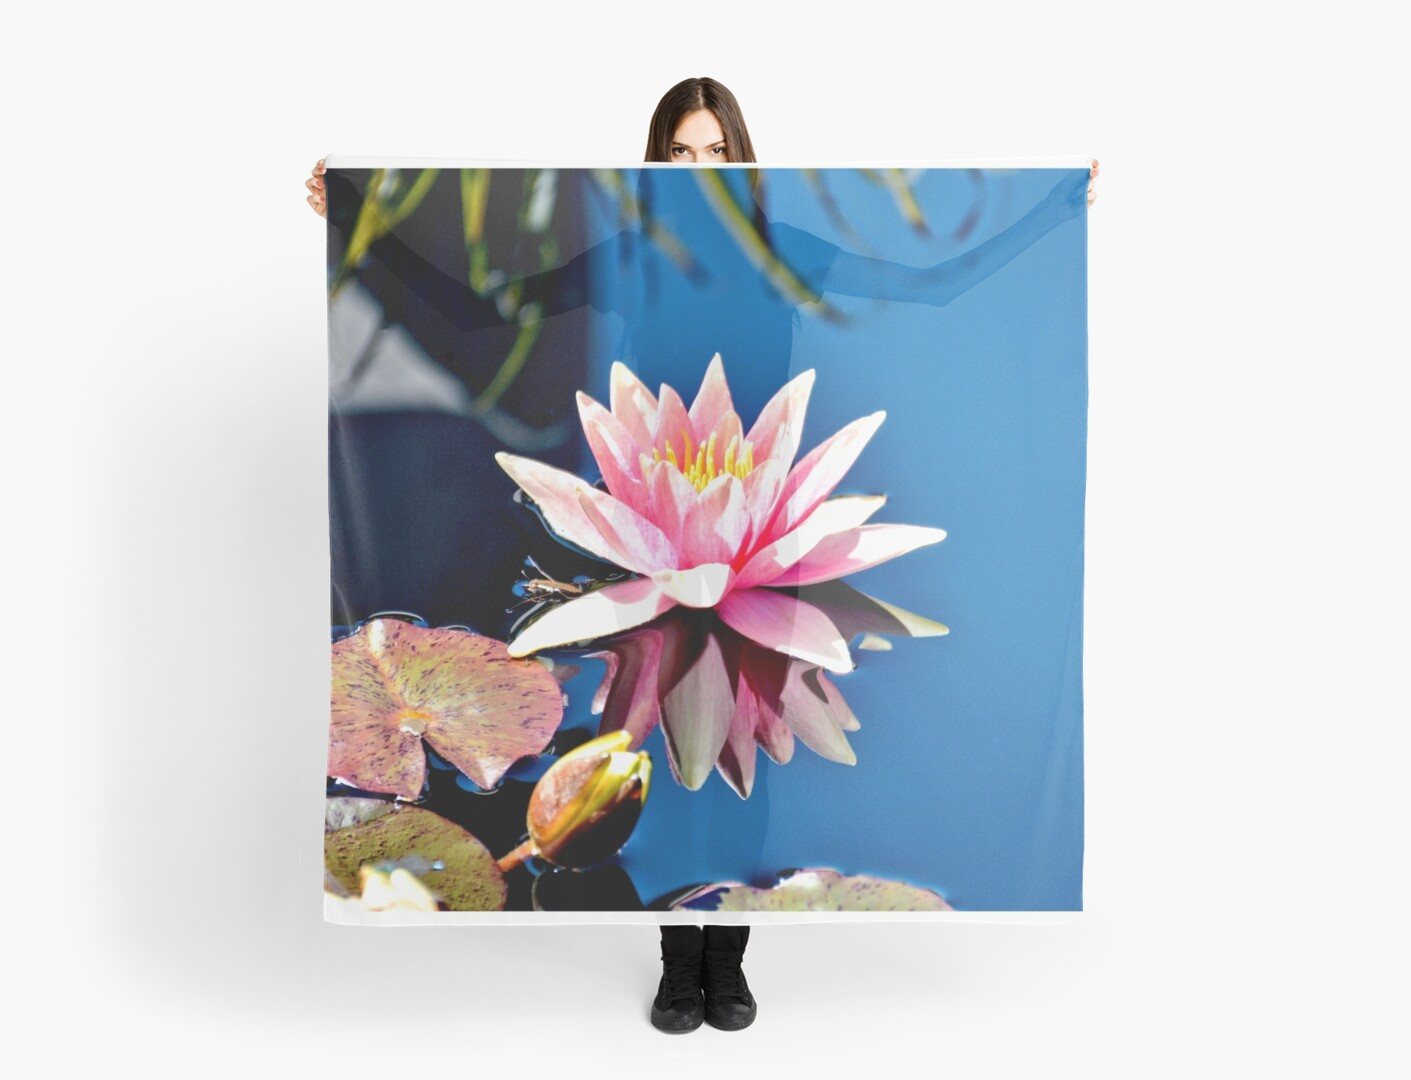 Pink Water Lily in Pool by Amy McDaniel